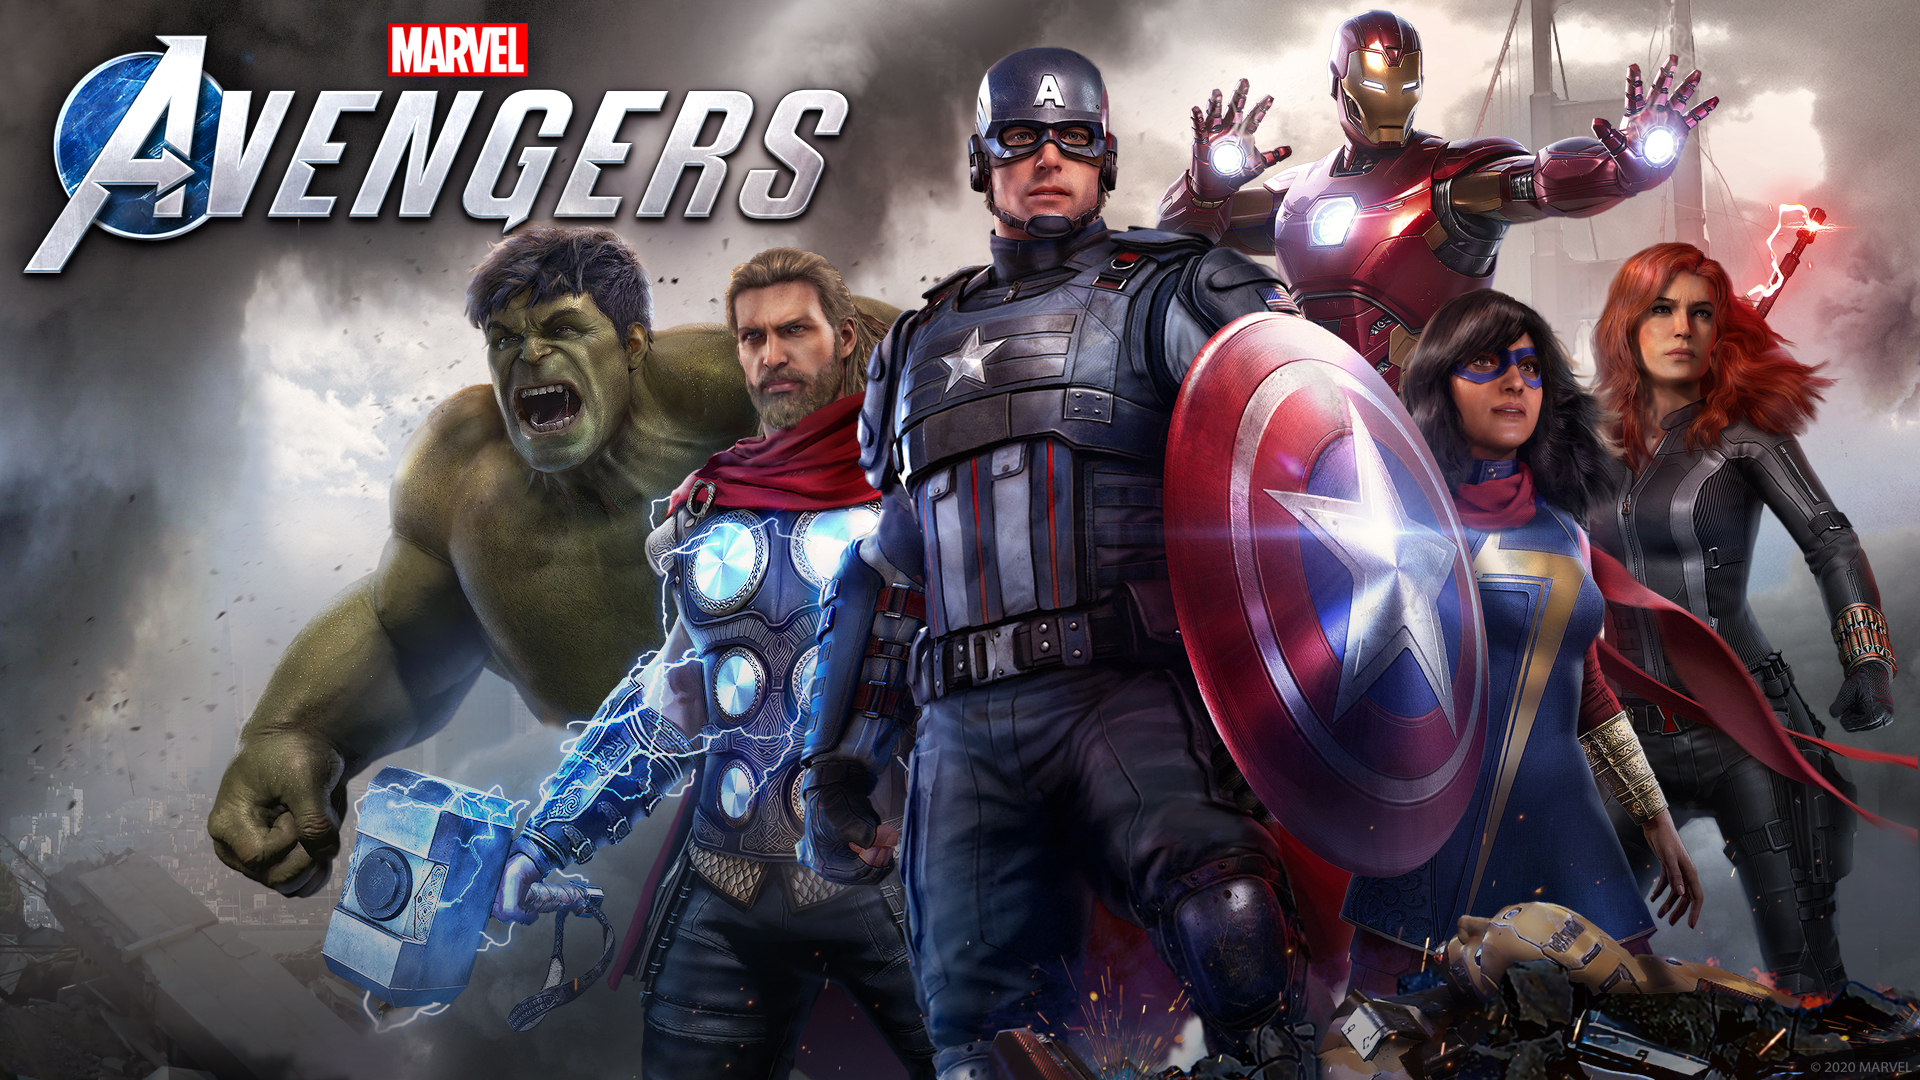 Marvel S Avengers Video Game Wallpaper Hd Games 4k Wallpapers Images Photos And Background